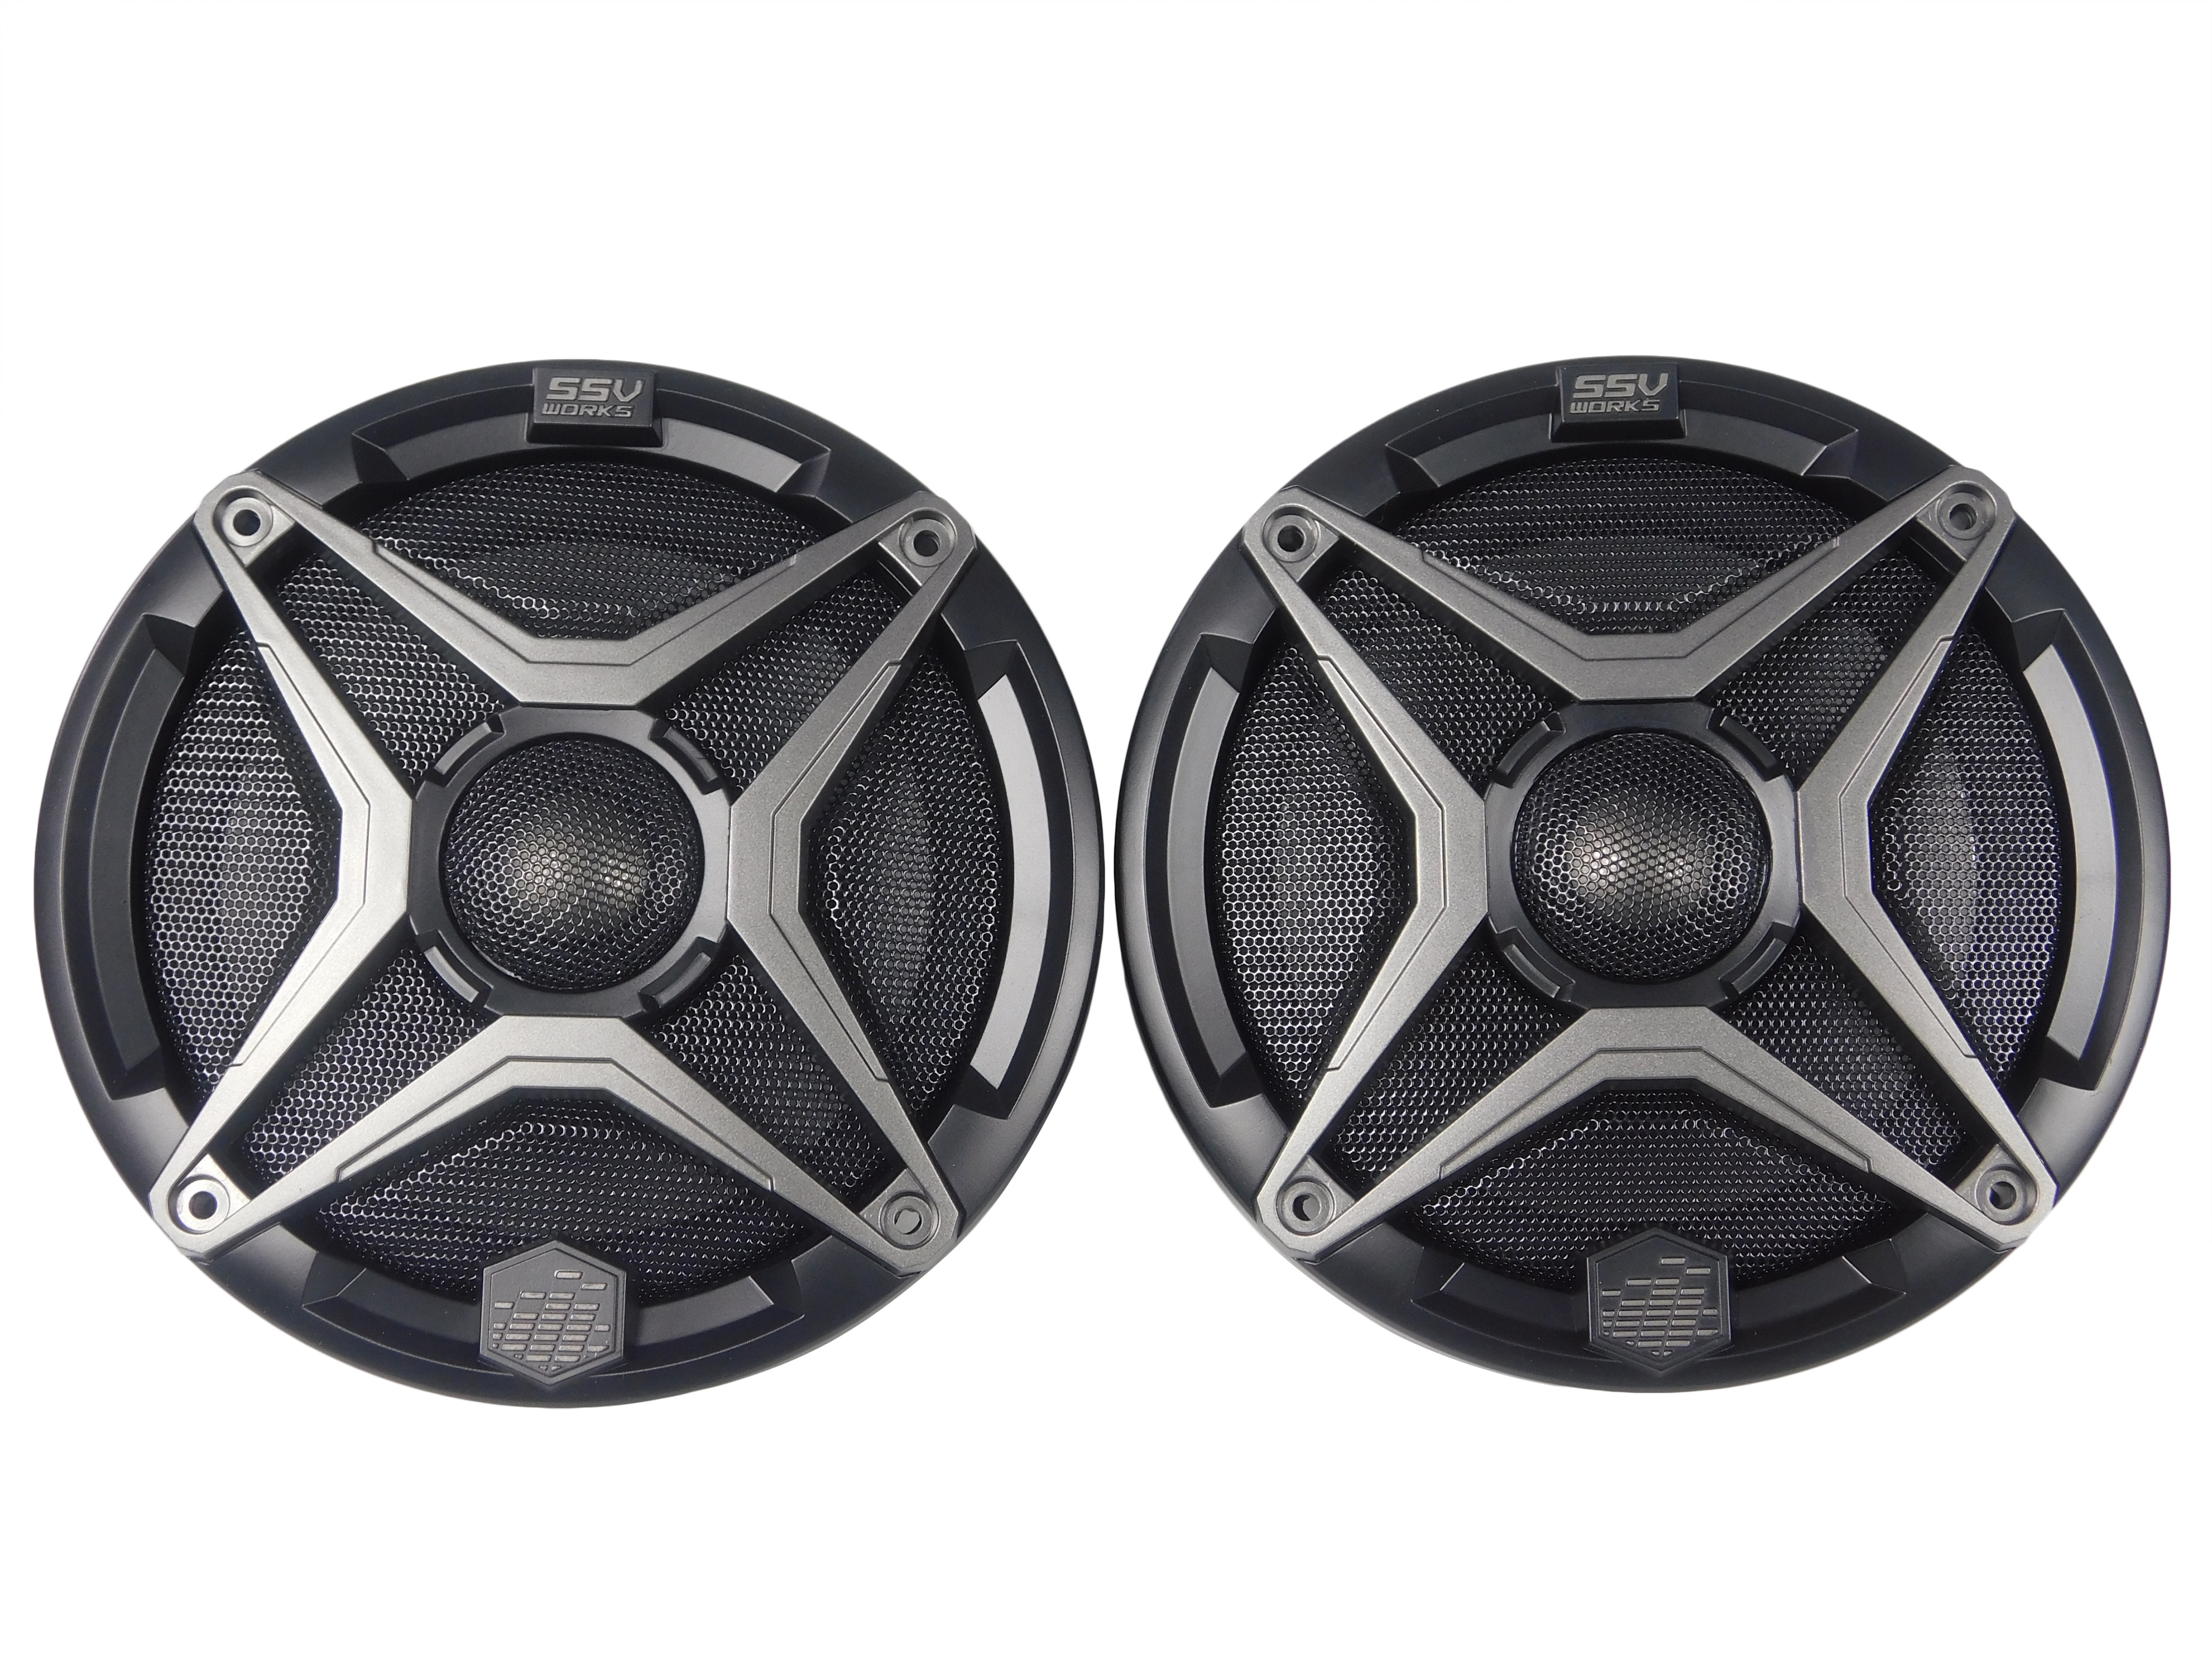 SSV-WORKS-WP-A6POWERSPORTS-6.5-SPEAKERS-image-1